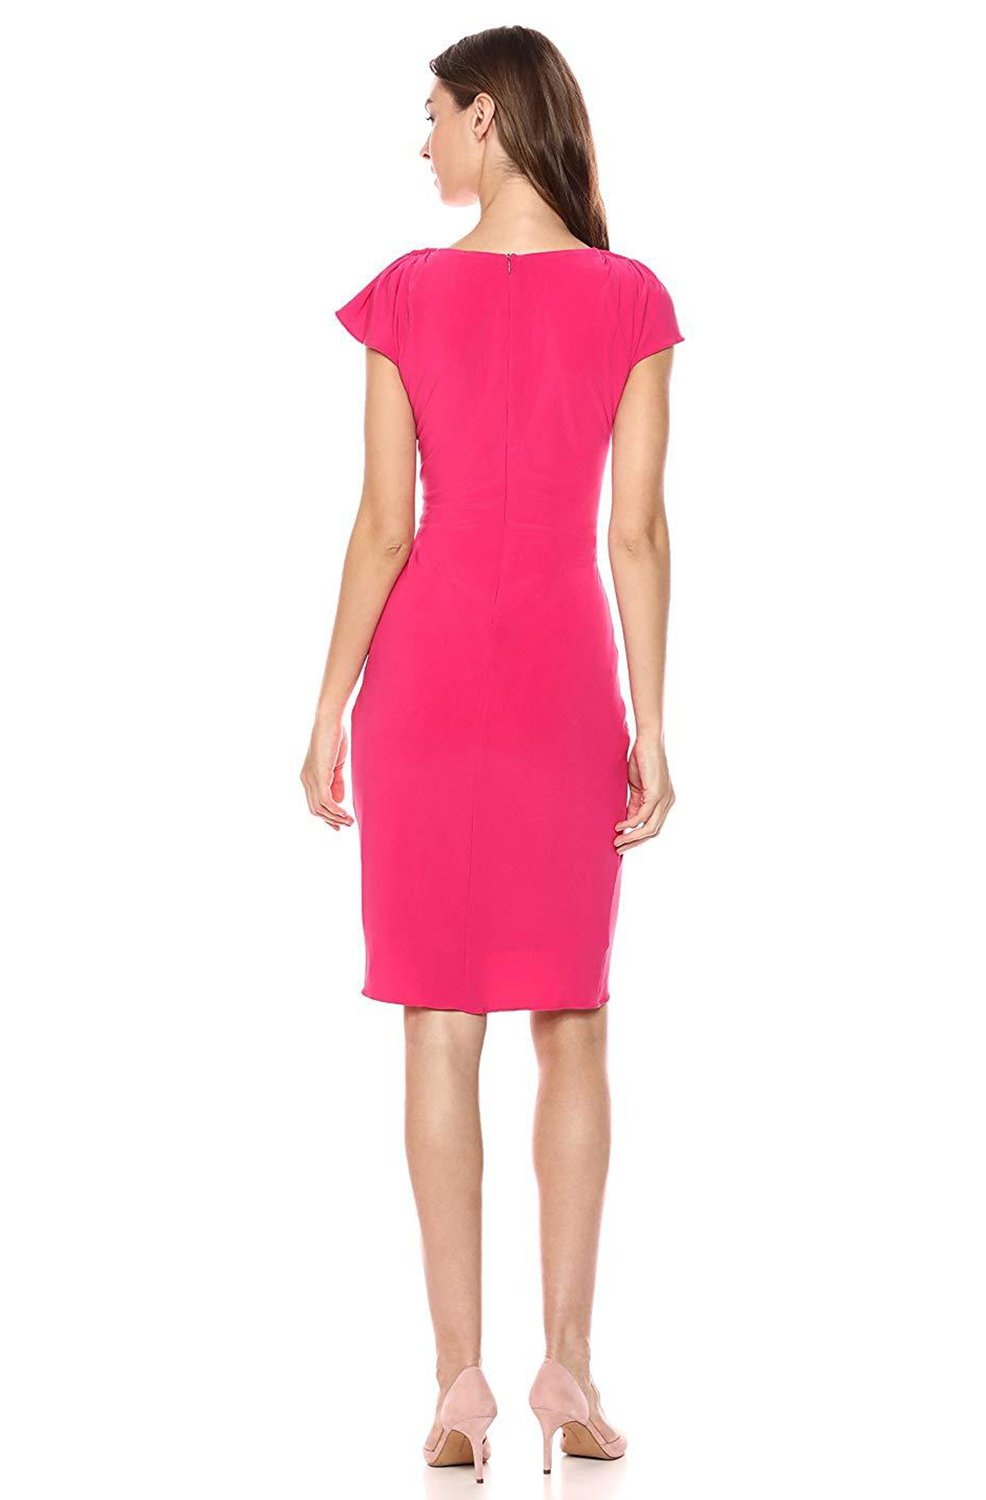 Taylor - 9780MJ Twist Knot Flutter Sleeve Jersey Dress In Pink